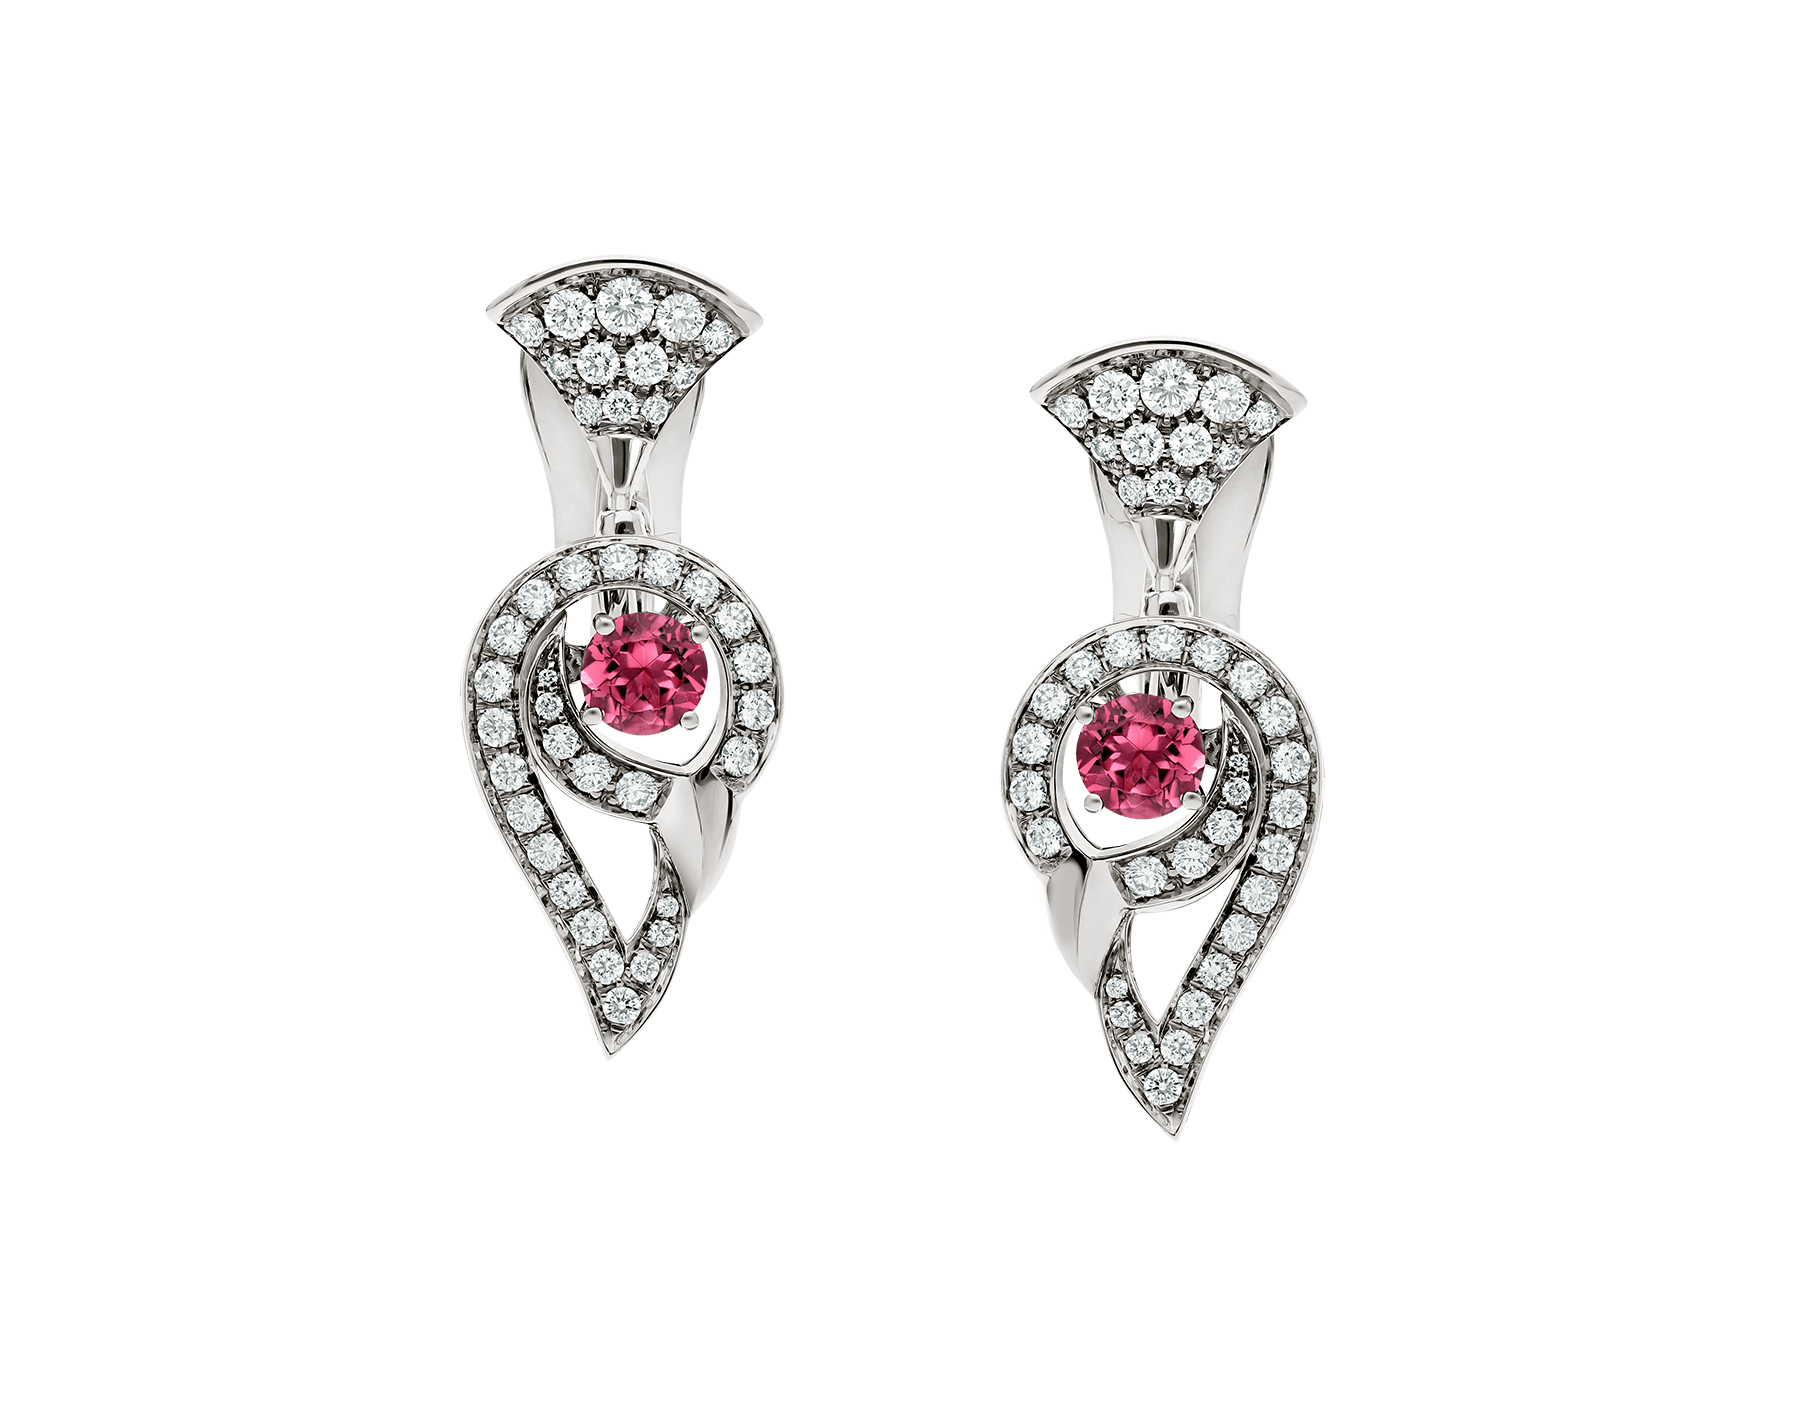 DIVAS' DREAM earrings in 18 kt white gold set with pink rubellite (0.75 ct) and pavé diamonds (1.10 ct). 354082 image 1